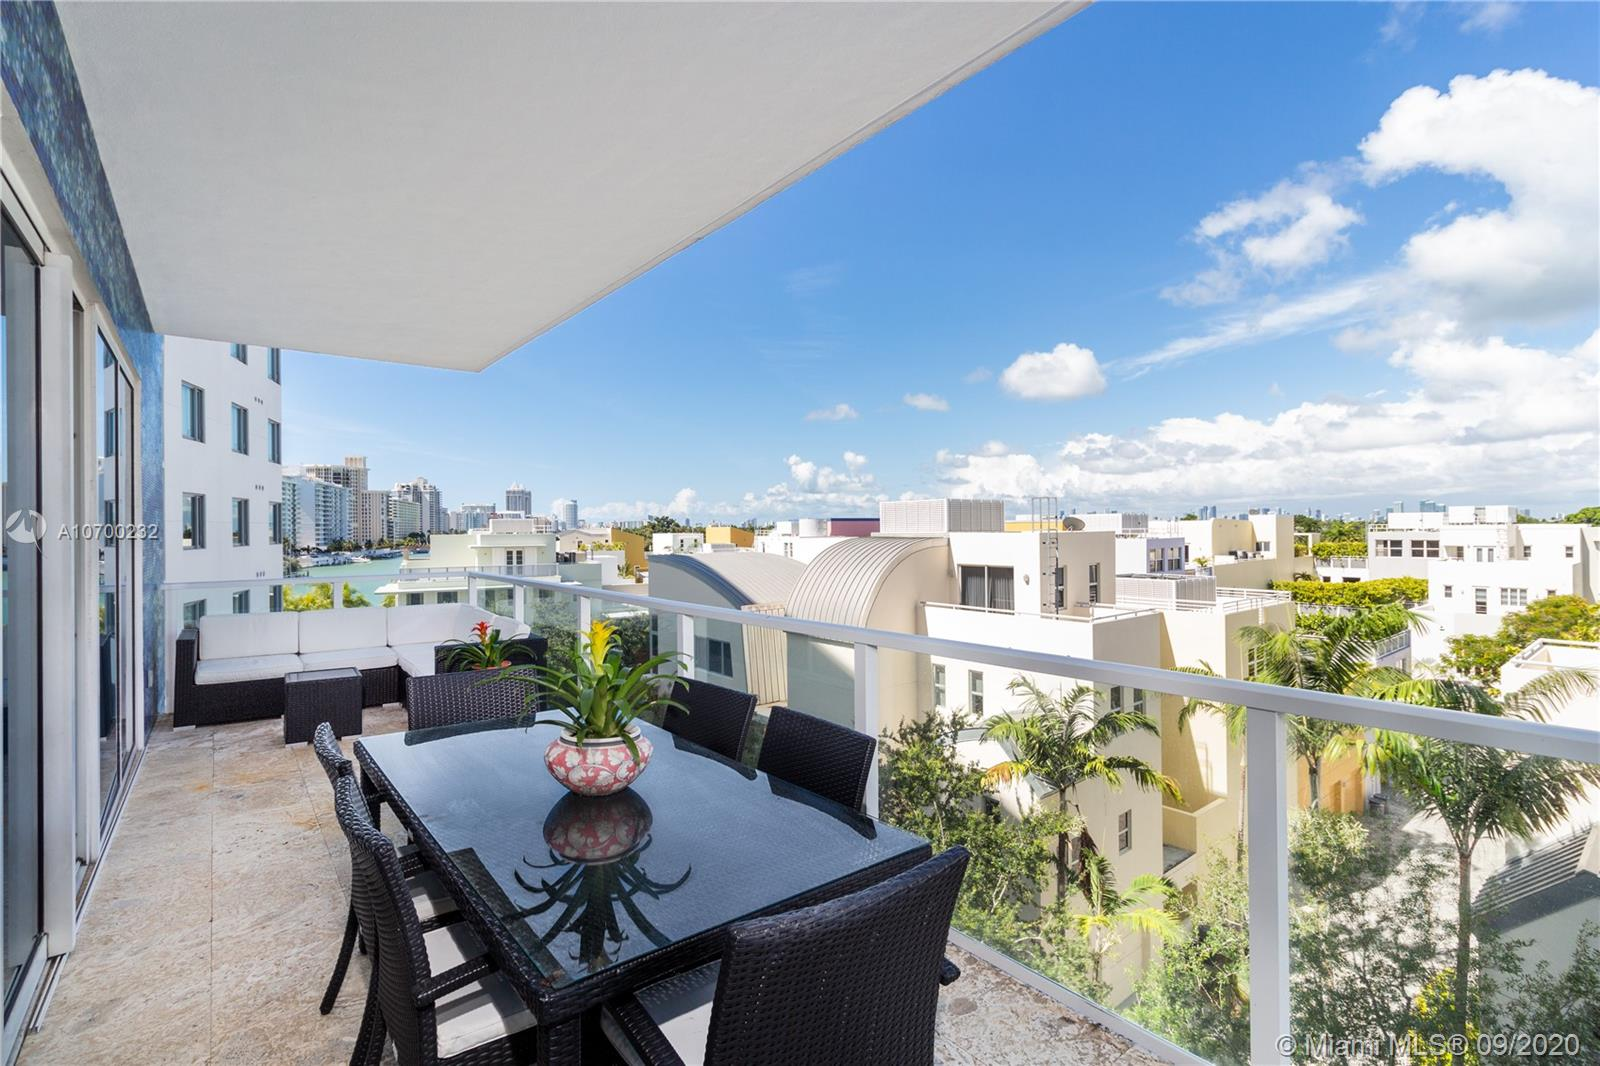 REDUCED $35,000 FOR QUICK SALE! MOTIVATED SELLERS!LIVE ON THE MOST PEACEFUL ISLAND ON MIAMI BEACHSTUNNING 2 BEDROOM 2.5 BATHHROM APARTMENT AT SPEAR AT ALLISON ISLAND, A PRIVATE GATED COMMUNITY ON 8.5 ACRES THE APARTMENT 1,755 SQ FT OF LIVING SPACE, BLONDE WOOD FLOORING, , KITCHEN W/MIELE, GAGGENAU, THERMADOR & SUB ZERO APPLIANCES. WATERWORKS SPA, DORNBRACHT FIXTURES ROOMS OPEN TO SPACIOUS BALCONIES WITH VIEWS OF INDIAN CREEK WATERWAY & MIAMI SKYLINE. ELECTRIC BLINDS, IN LIVING ROOM, CLOSET BUILT INS & SHELVES, IMPACT WINDOWS, 2 ASSIGNED PARKING. 2 INCREDIBLE 85 FT LAP POOLS, 6000 SQ FT STATE OF THE ART GYM W/MASSAGE ROOMS, SAUNA & STEAM AND CHILD'S PLAY AREA.